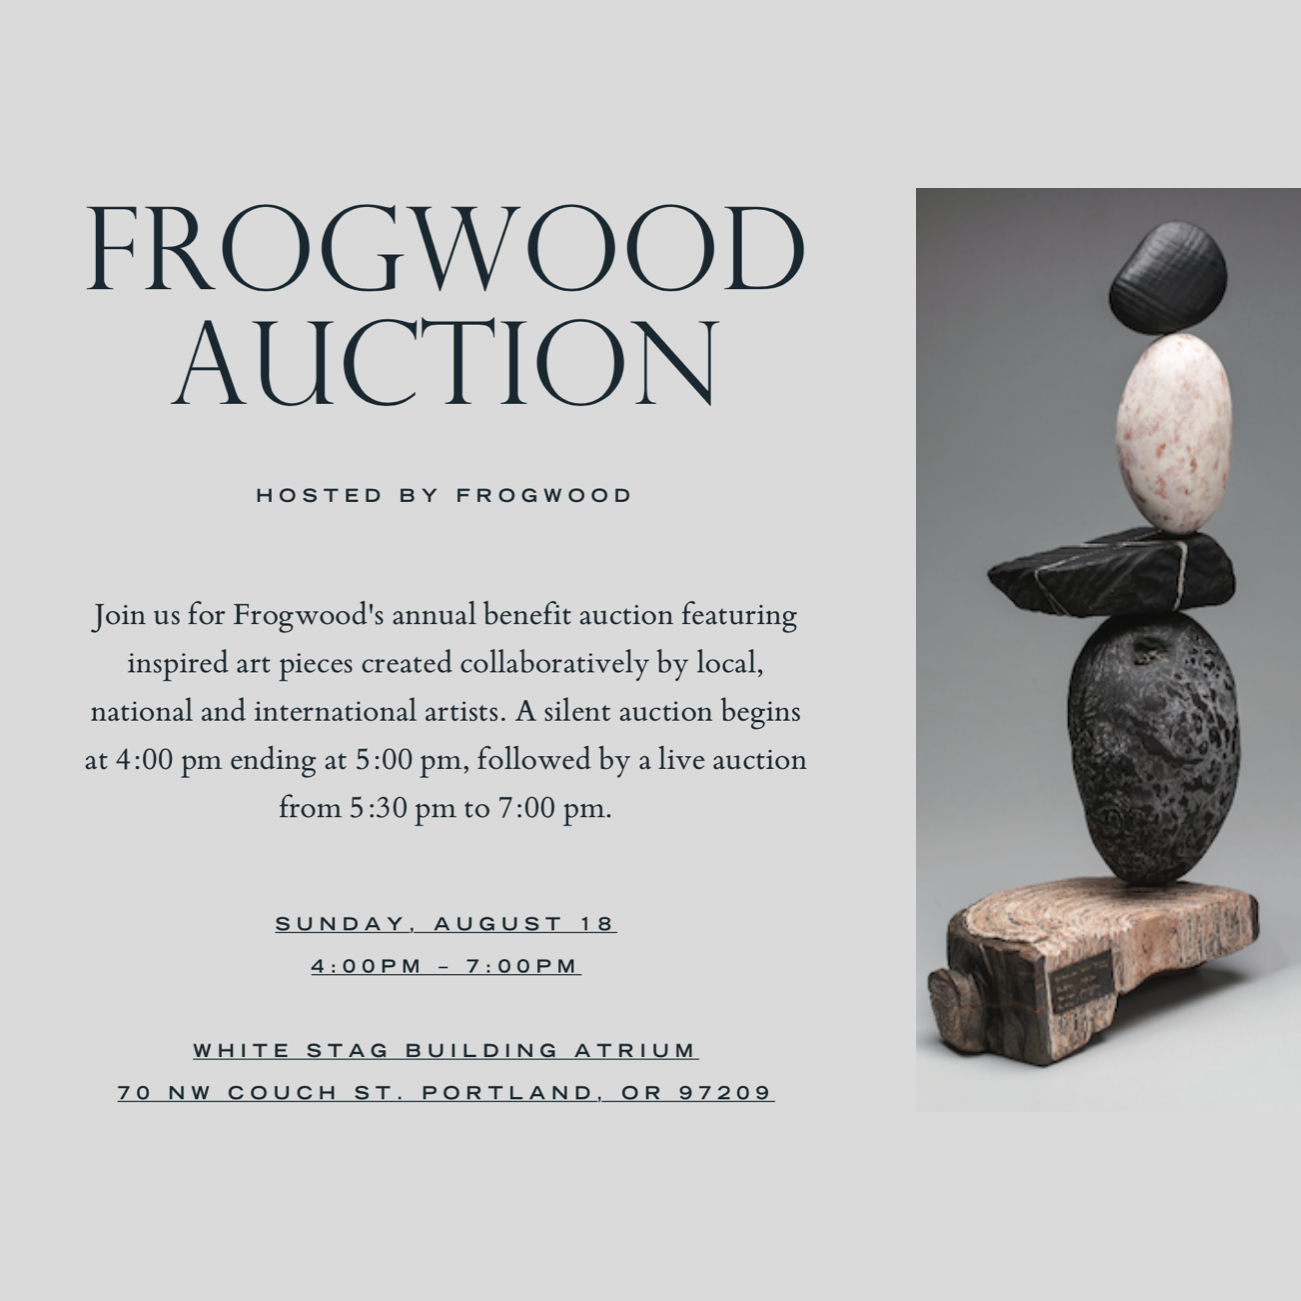 Frogwood Auction Invitation Instagram Square.png